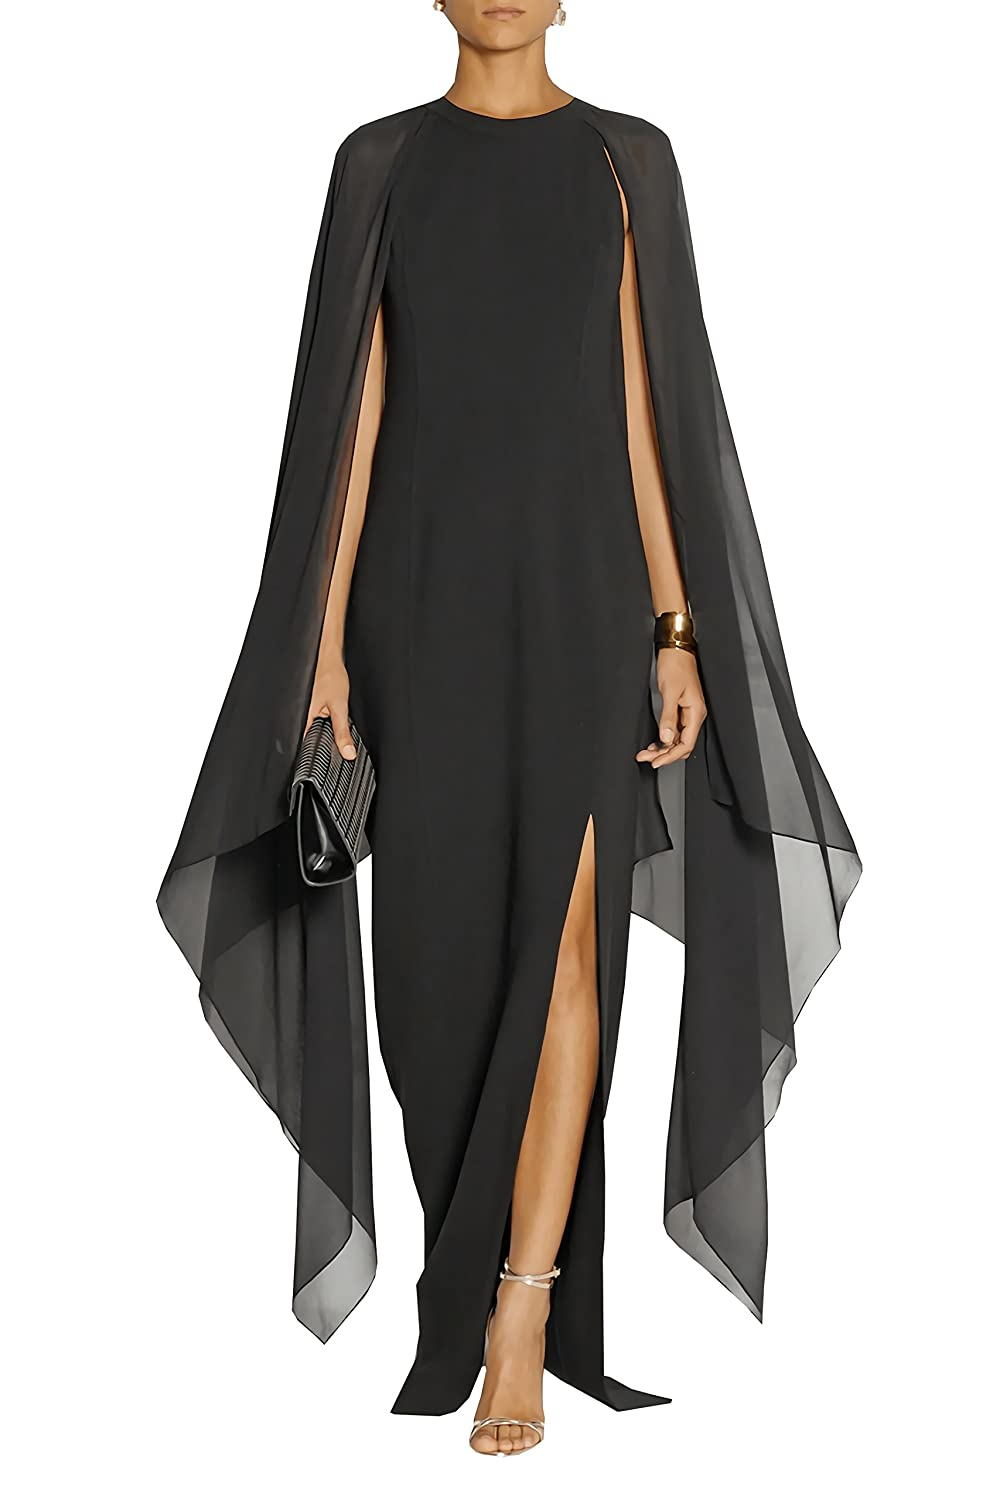 L&ZZ Womens Long Chiffon Formal Gown Prom Evening Dresses with Cape at Amazon Womens Clothing store: